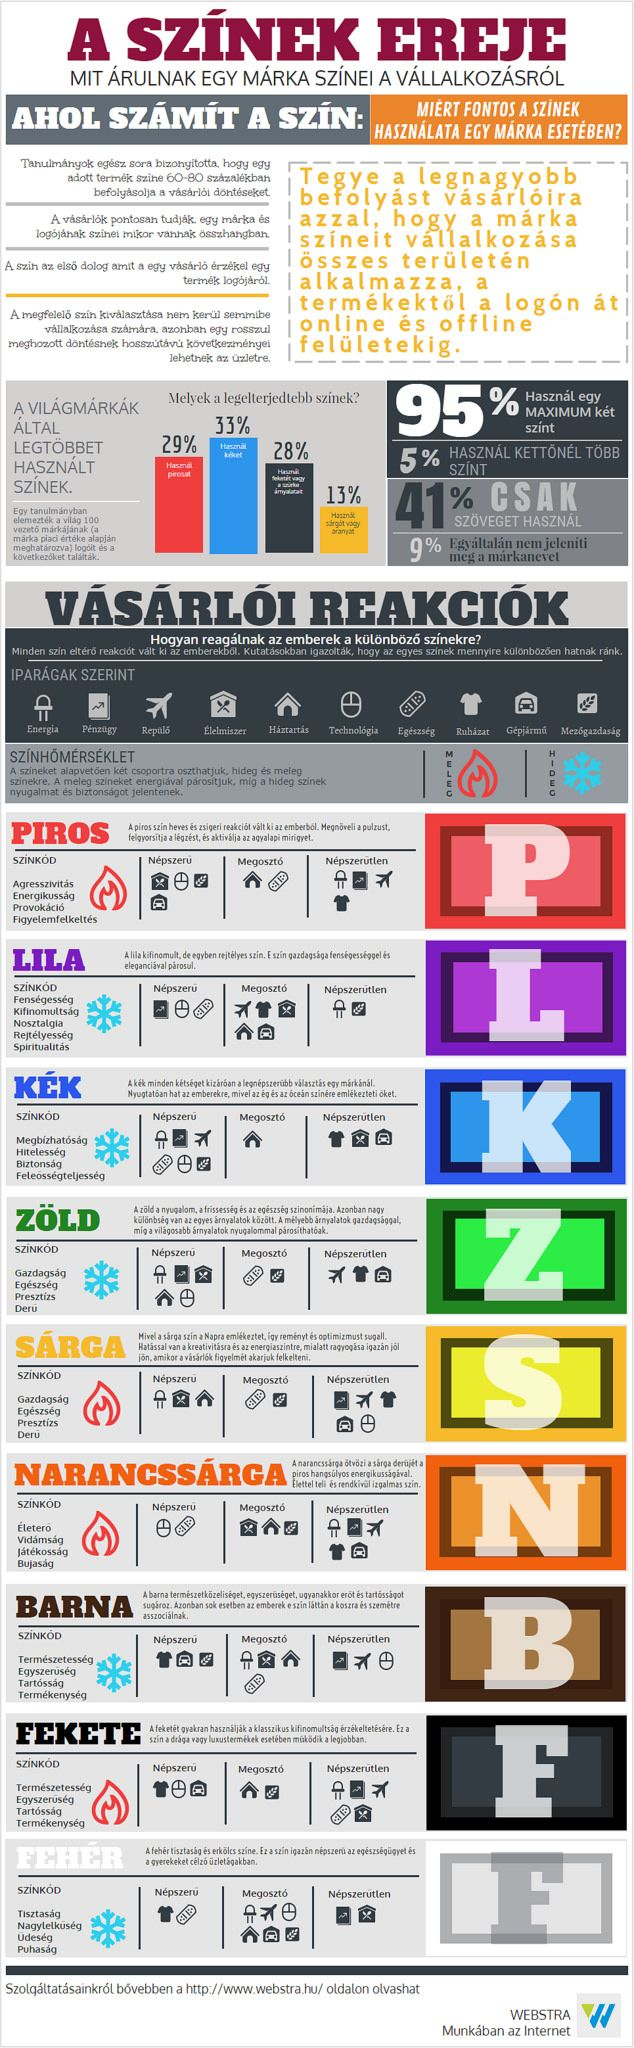 Best 25+ Free infographic maker ideas on Pinterest | Quote ...